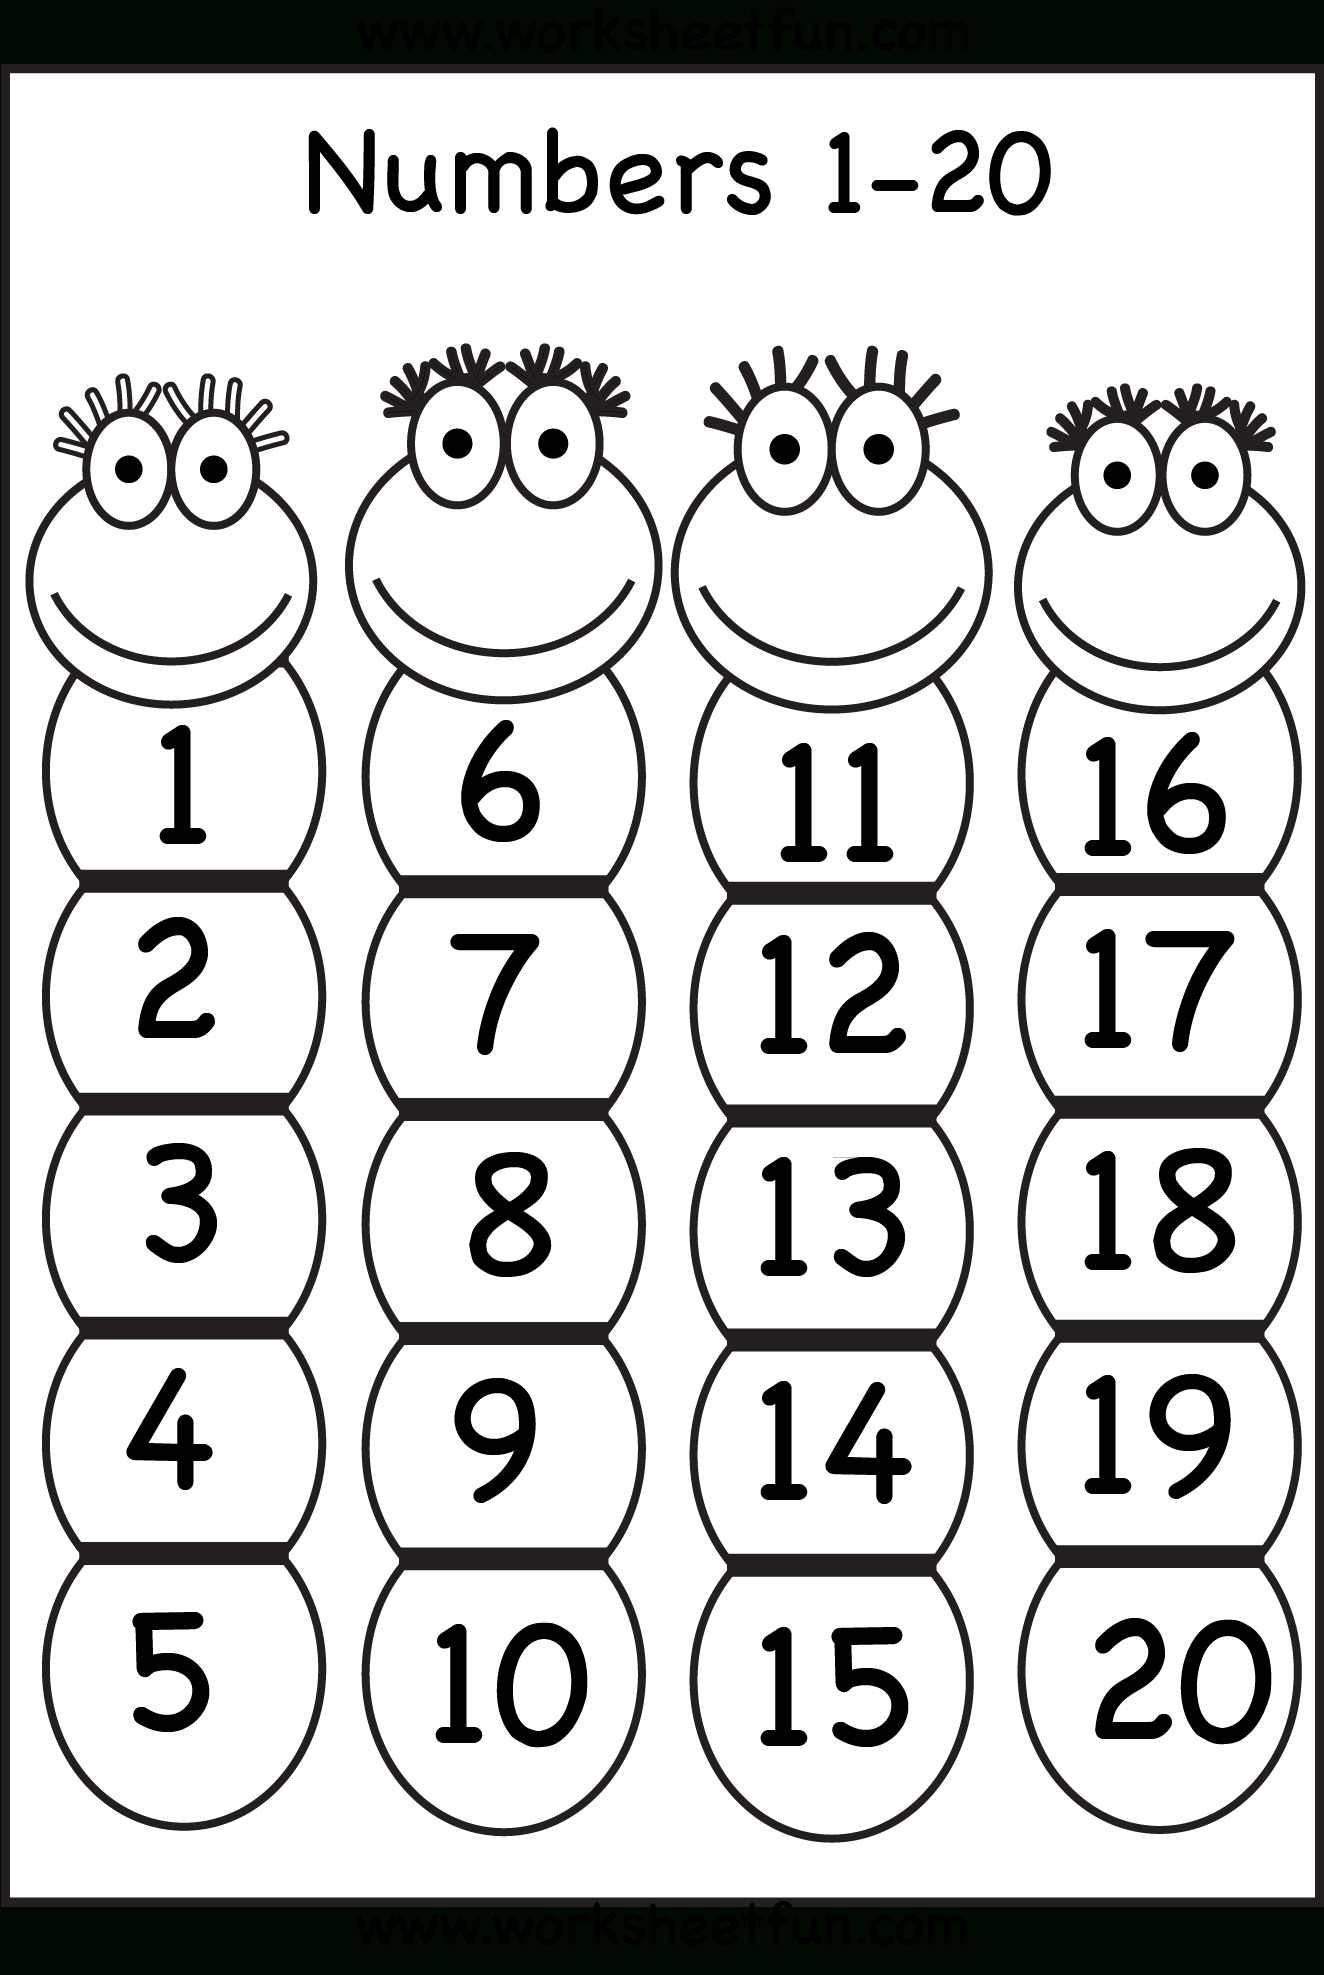 Numbers 1-20 | Printable Worksheets | Numbers Preschool, Preschool - Free Printable Numbers 1 20